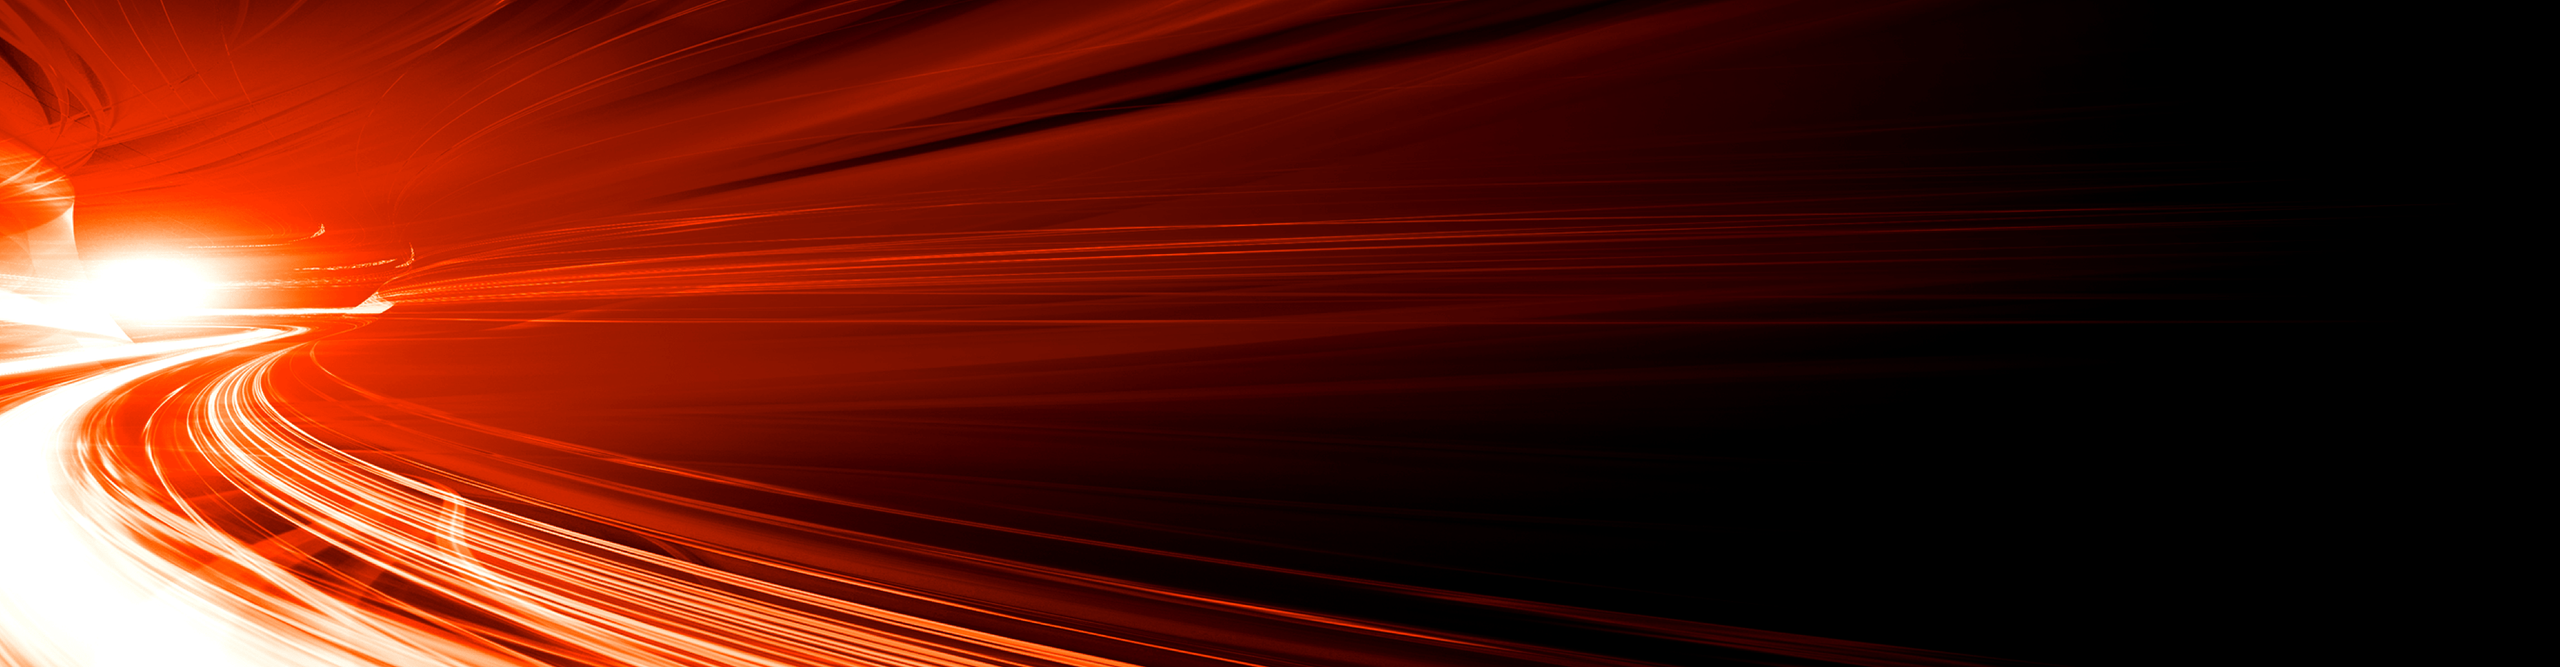 Background image of white and red rays of light